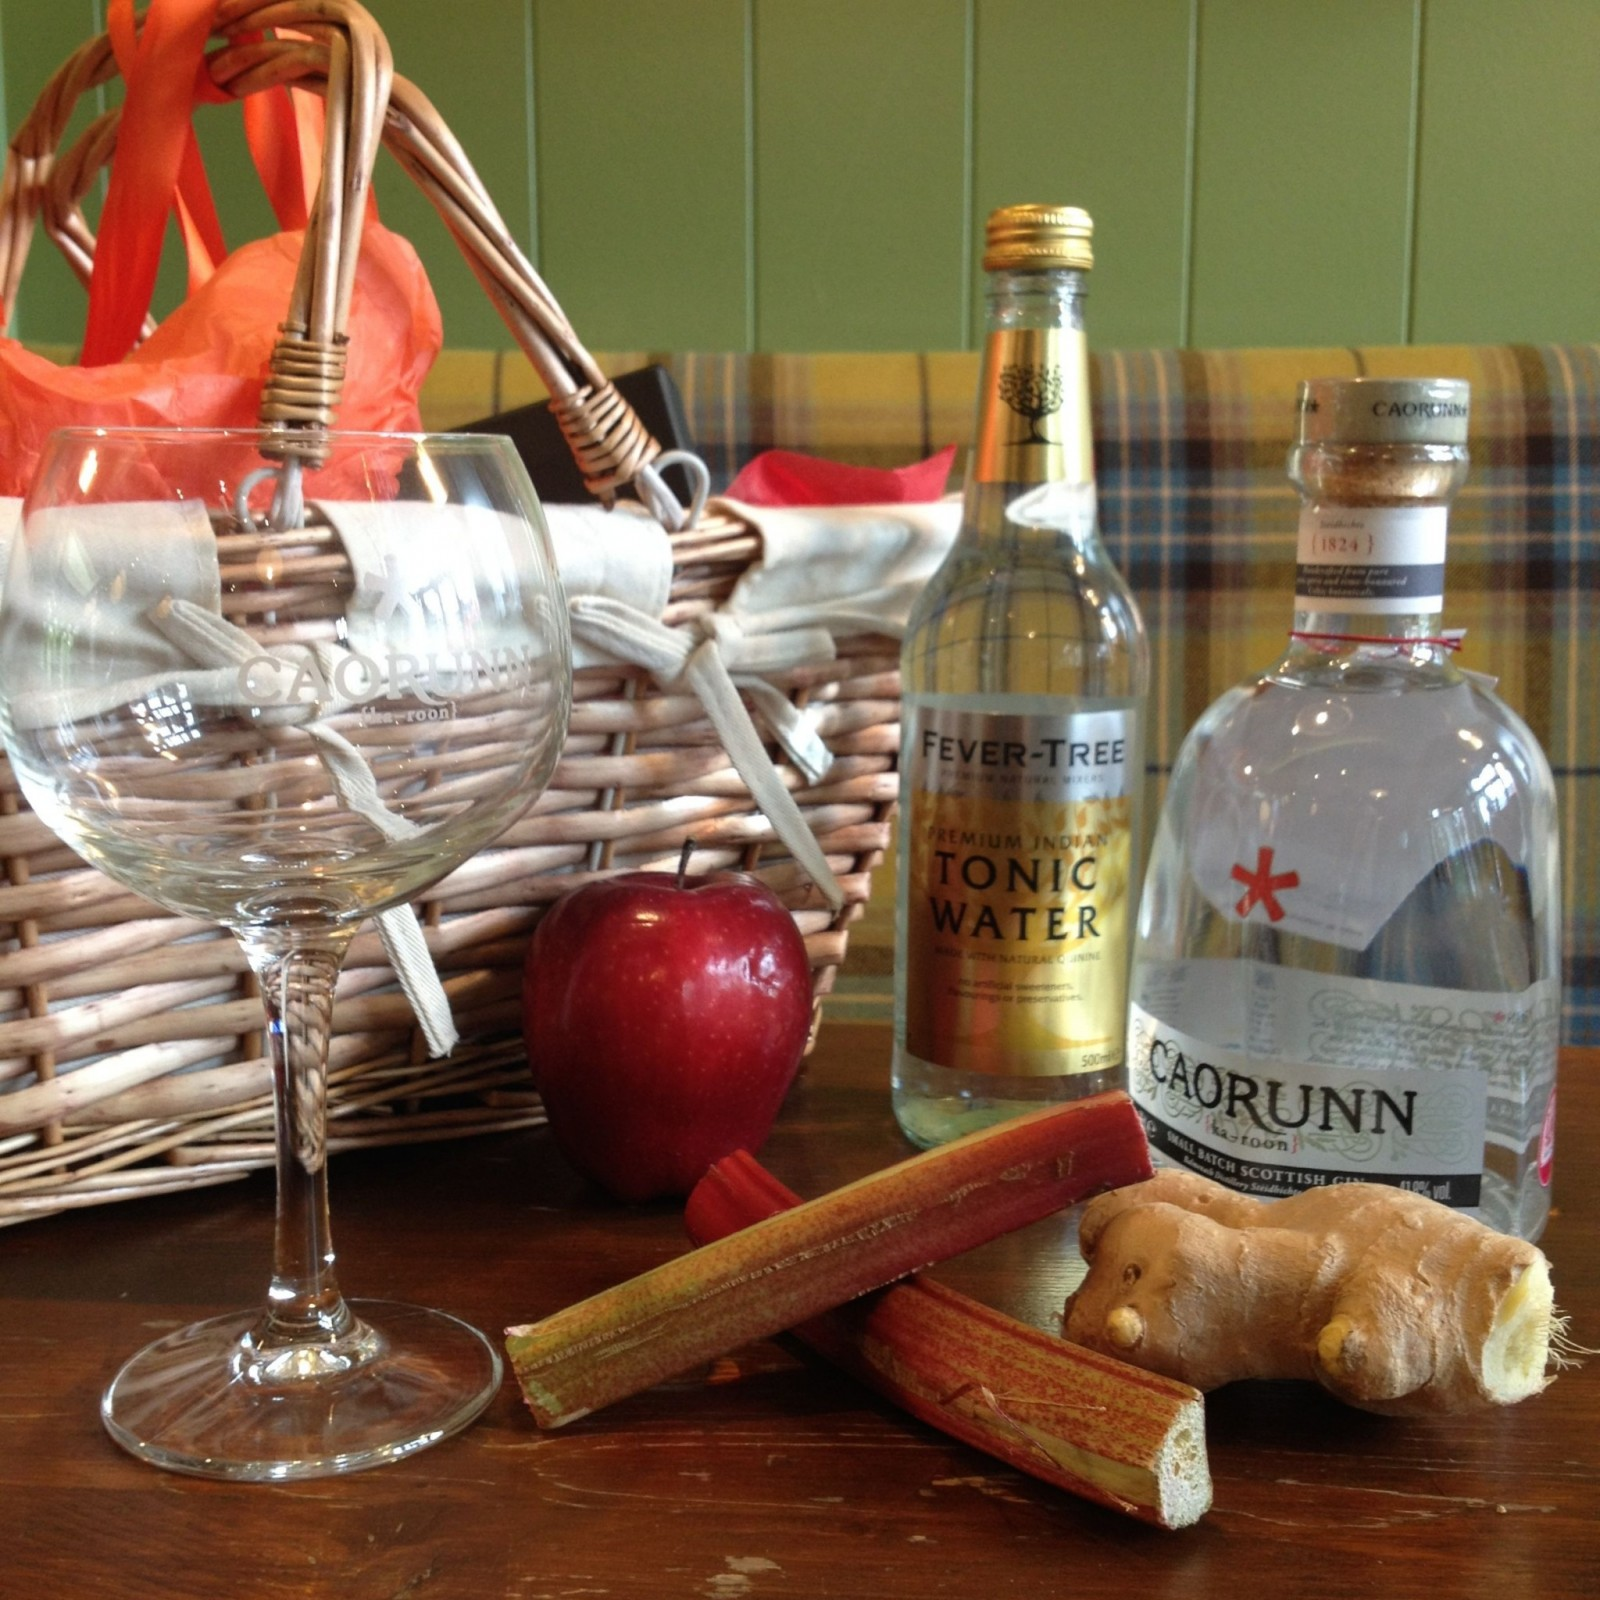 Autumn Cocktails: Mourning Summer? Caorunn Have You Covered With Their